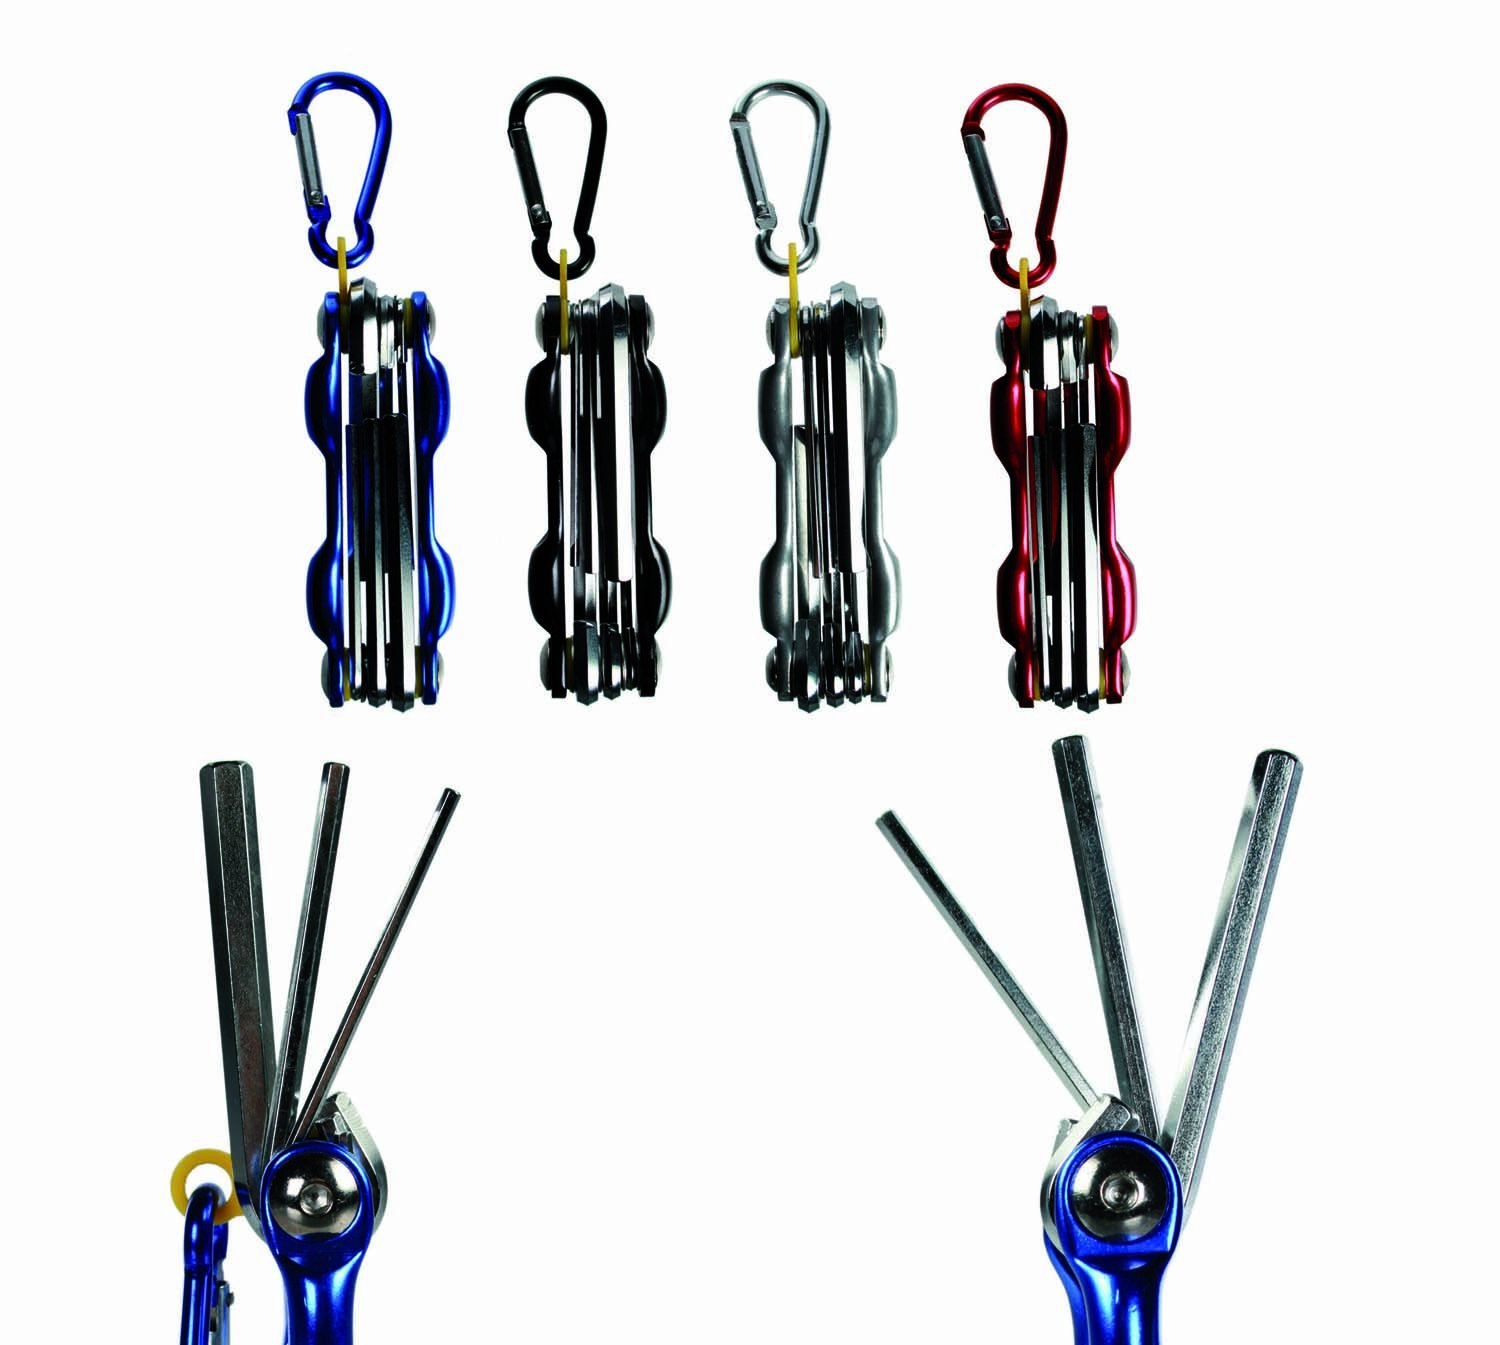 Great Quality Present Gift. Red Foldable Multi Sized Allen Keys Tool with Belt Clip. Great for Any Tool Box Gifts For All Emporium